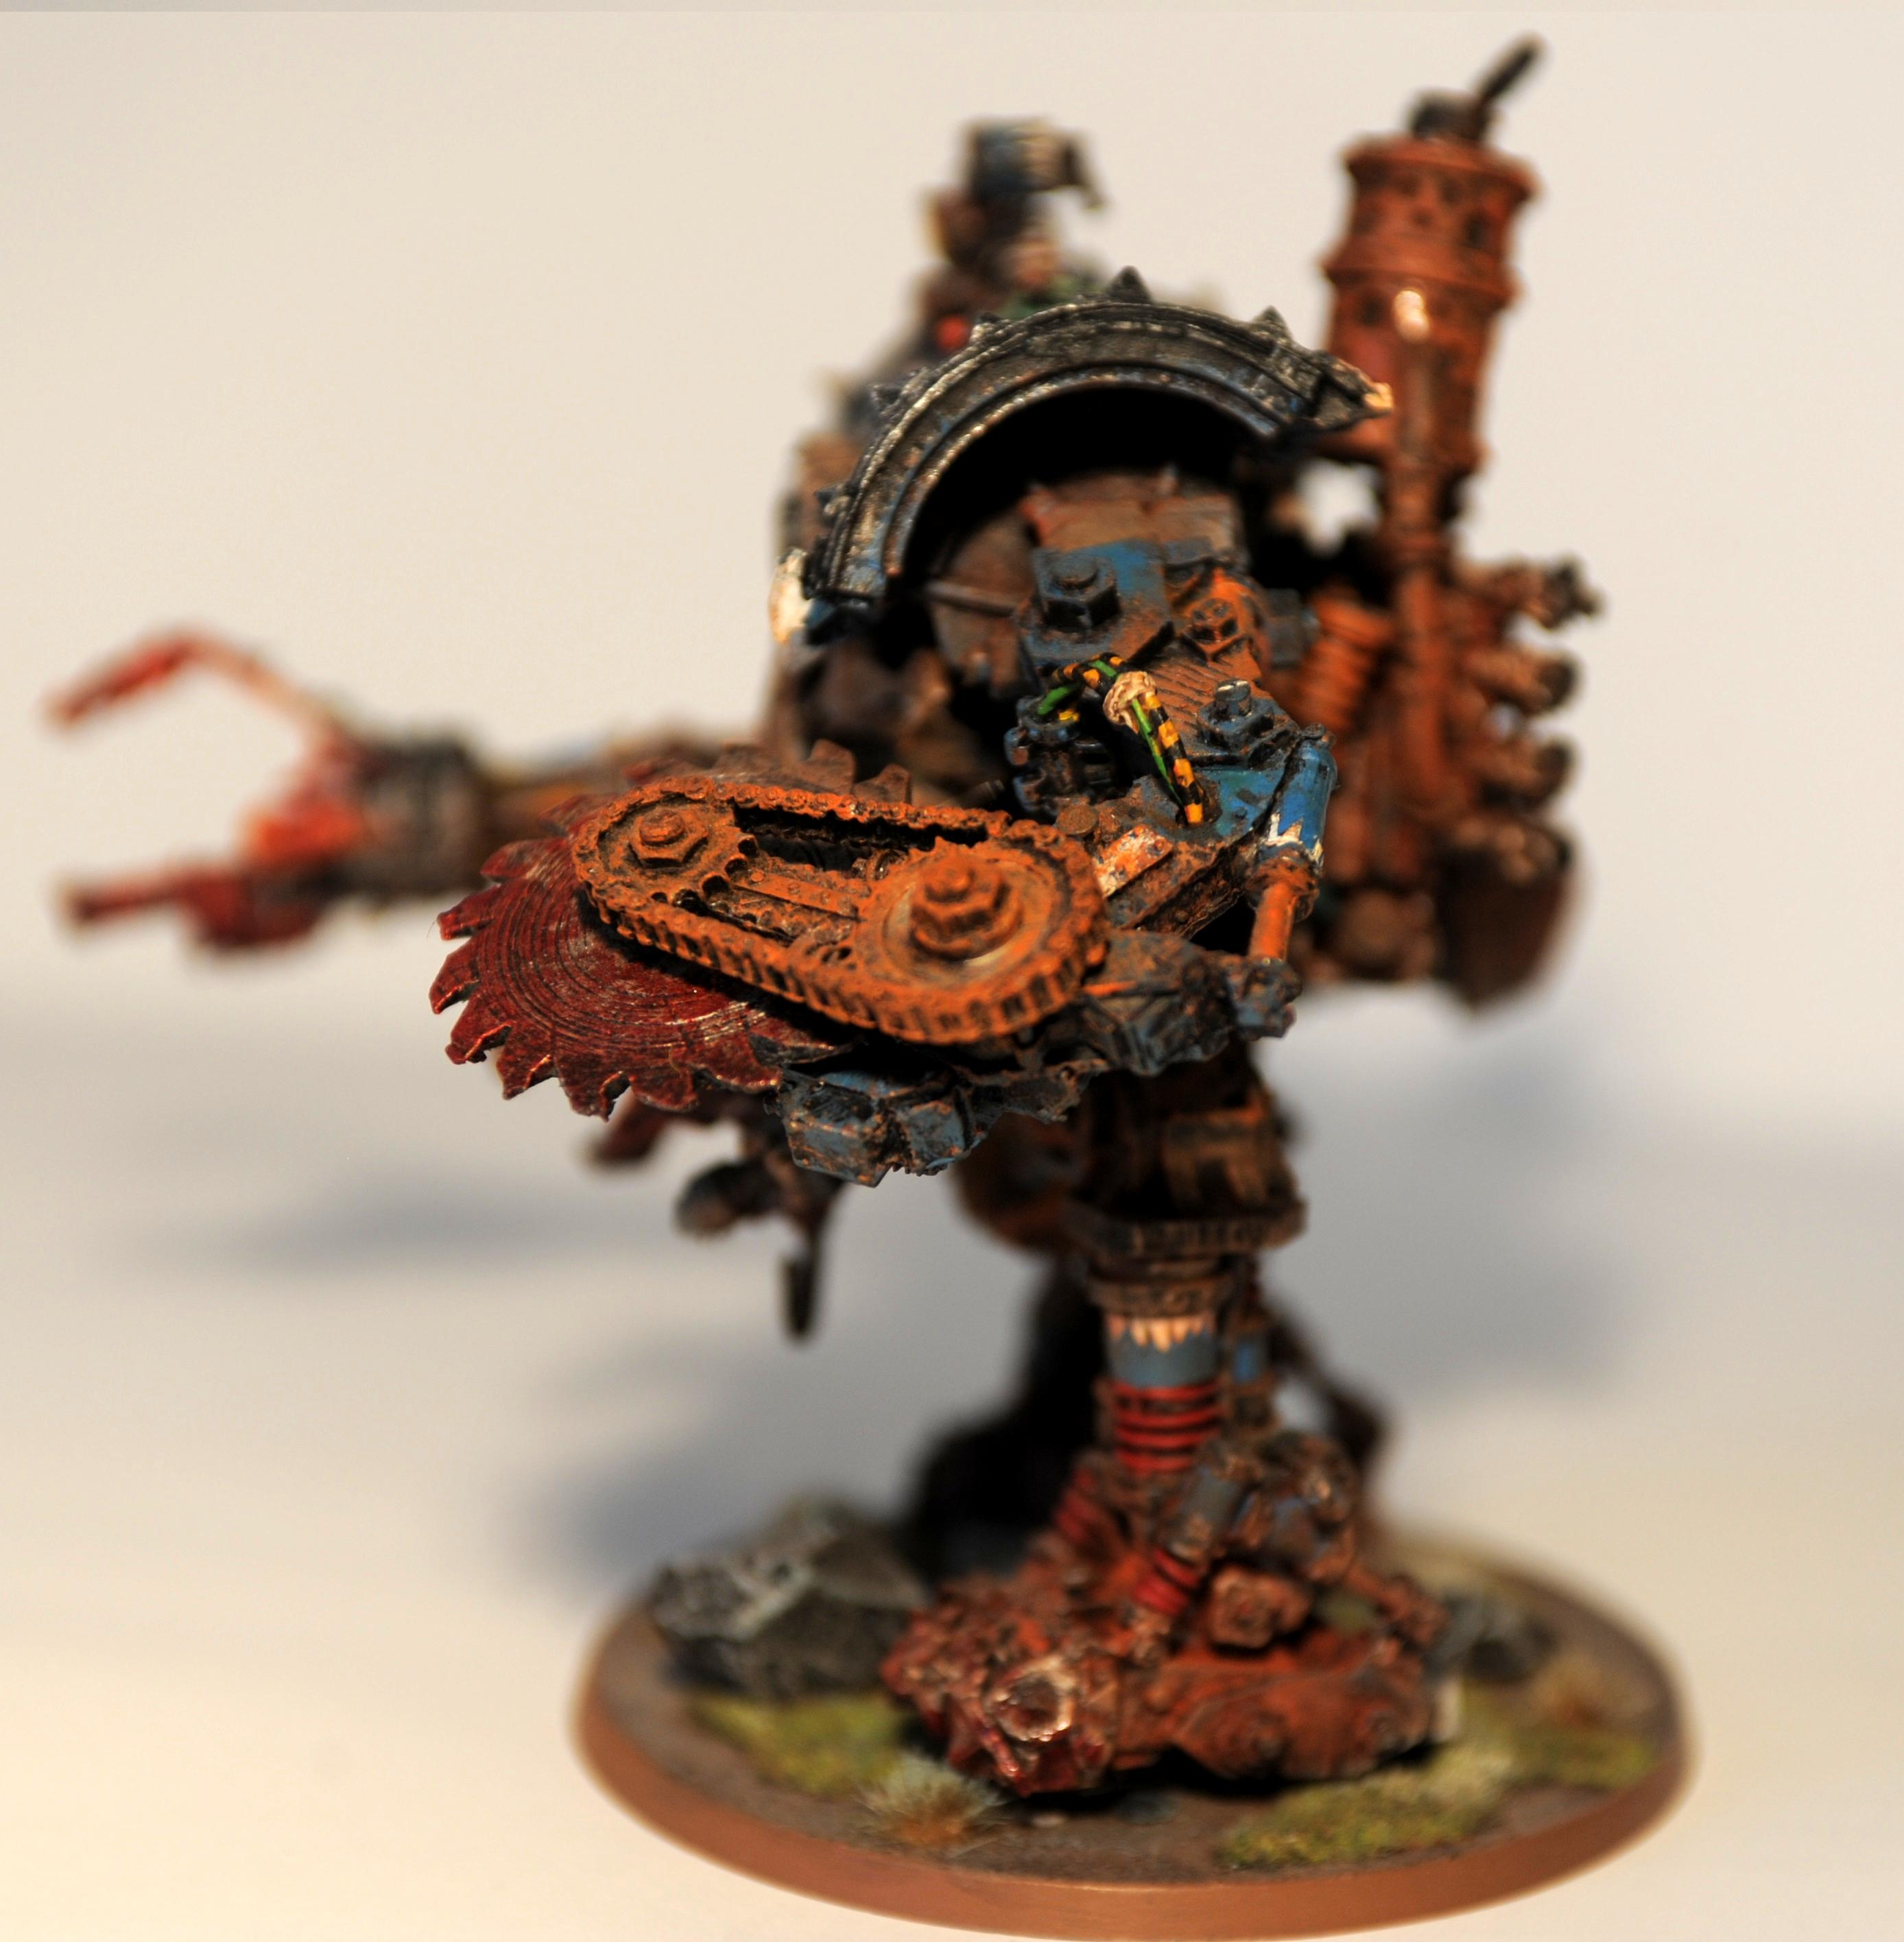 Deff Dread, Drednought, Forge World, Grot Riggers, Orcs, Rust, Warhammer 40,000